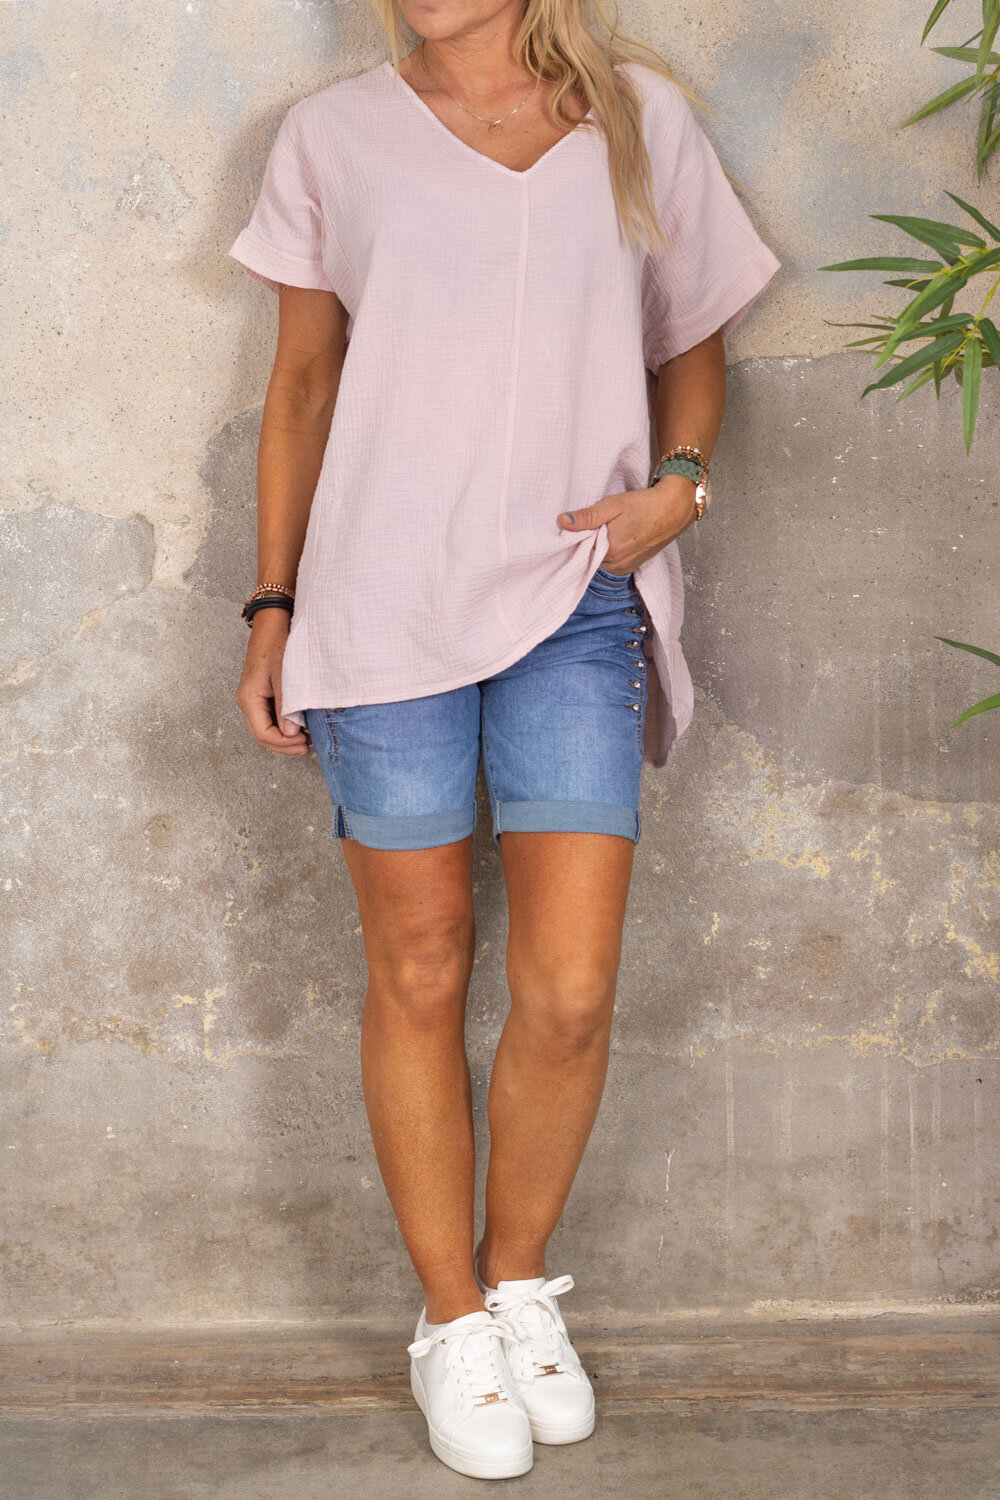 Ninni - Oversize top - Old pink